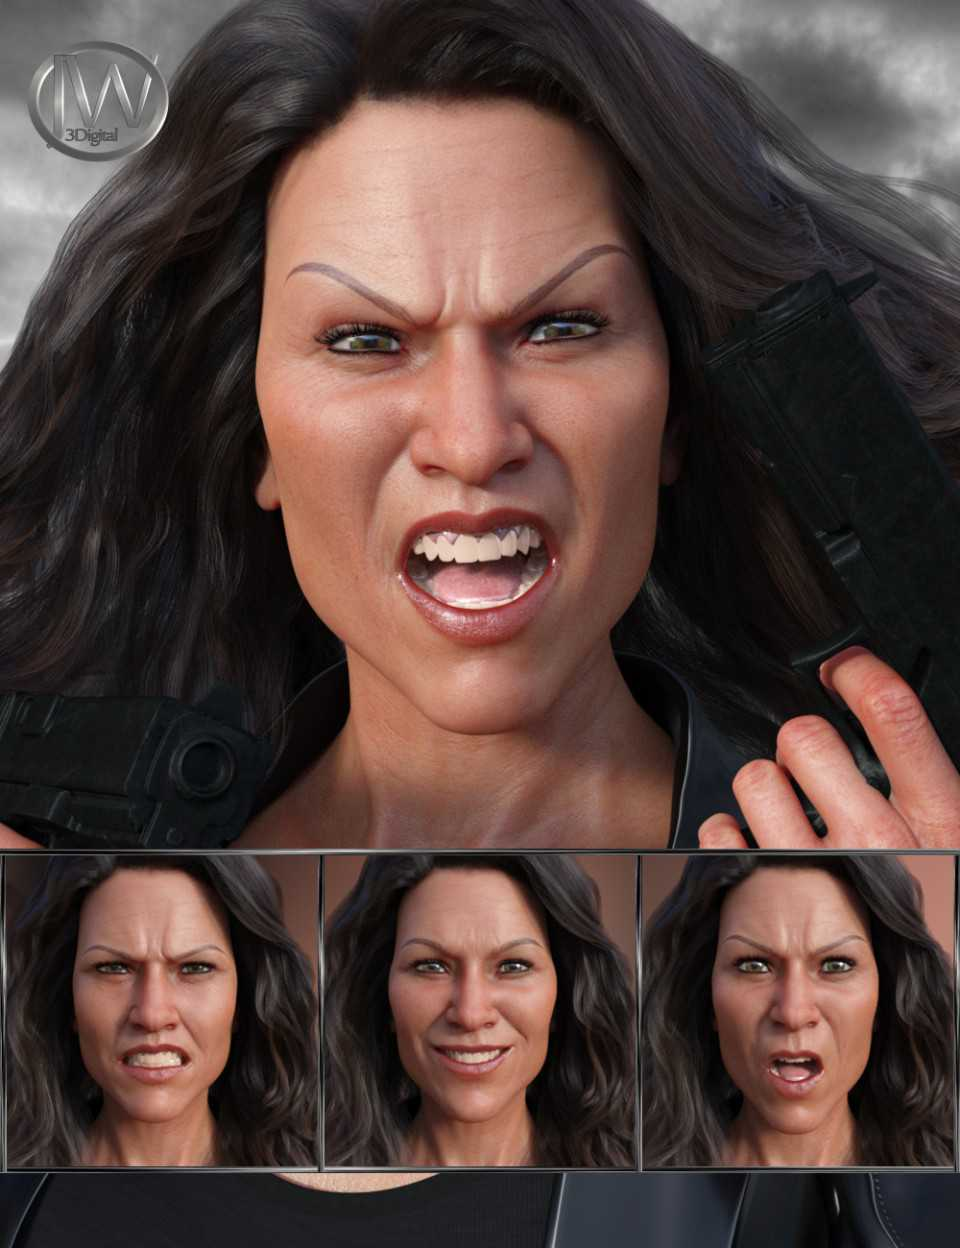 No Mercy – Expressions for Genesis 8 Female and Sydney 8